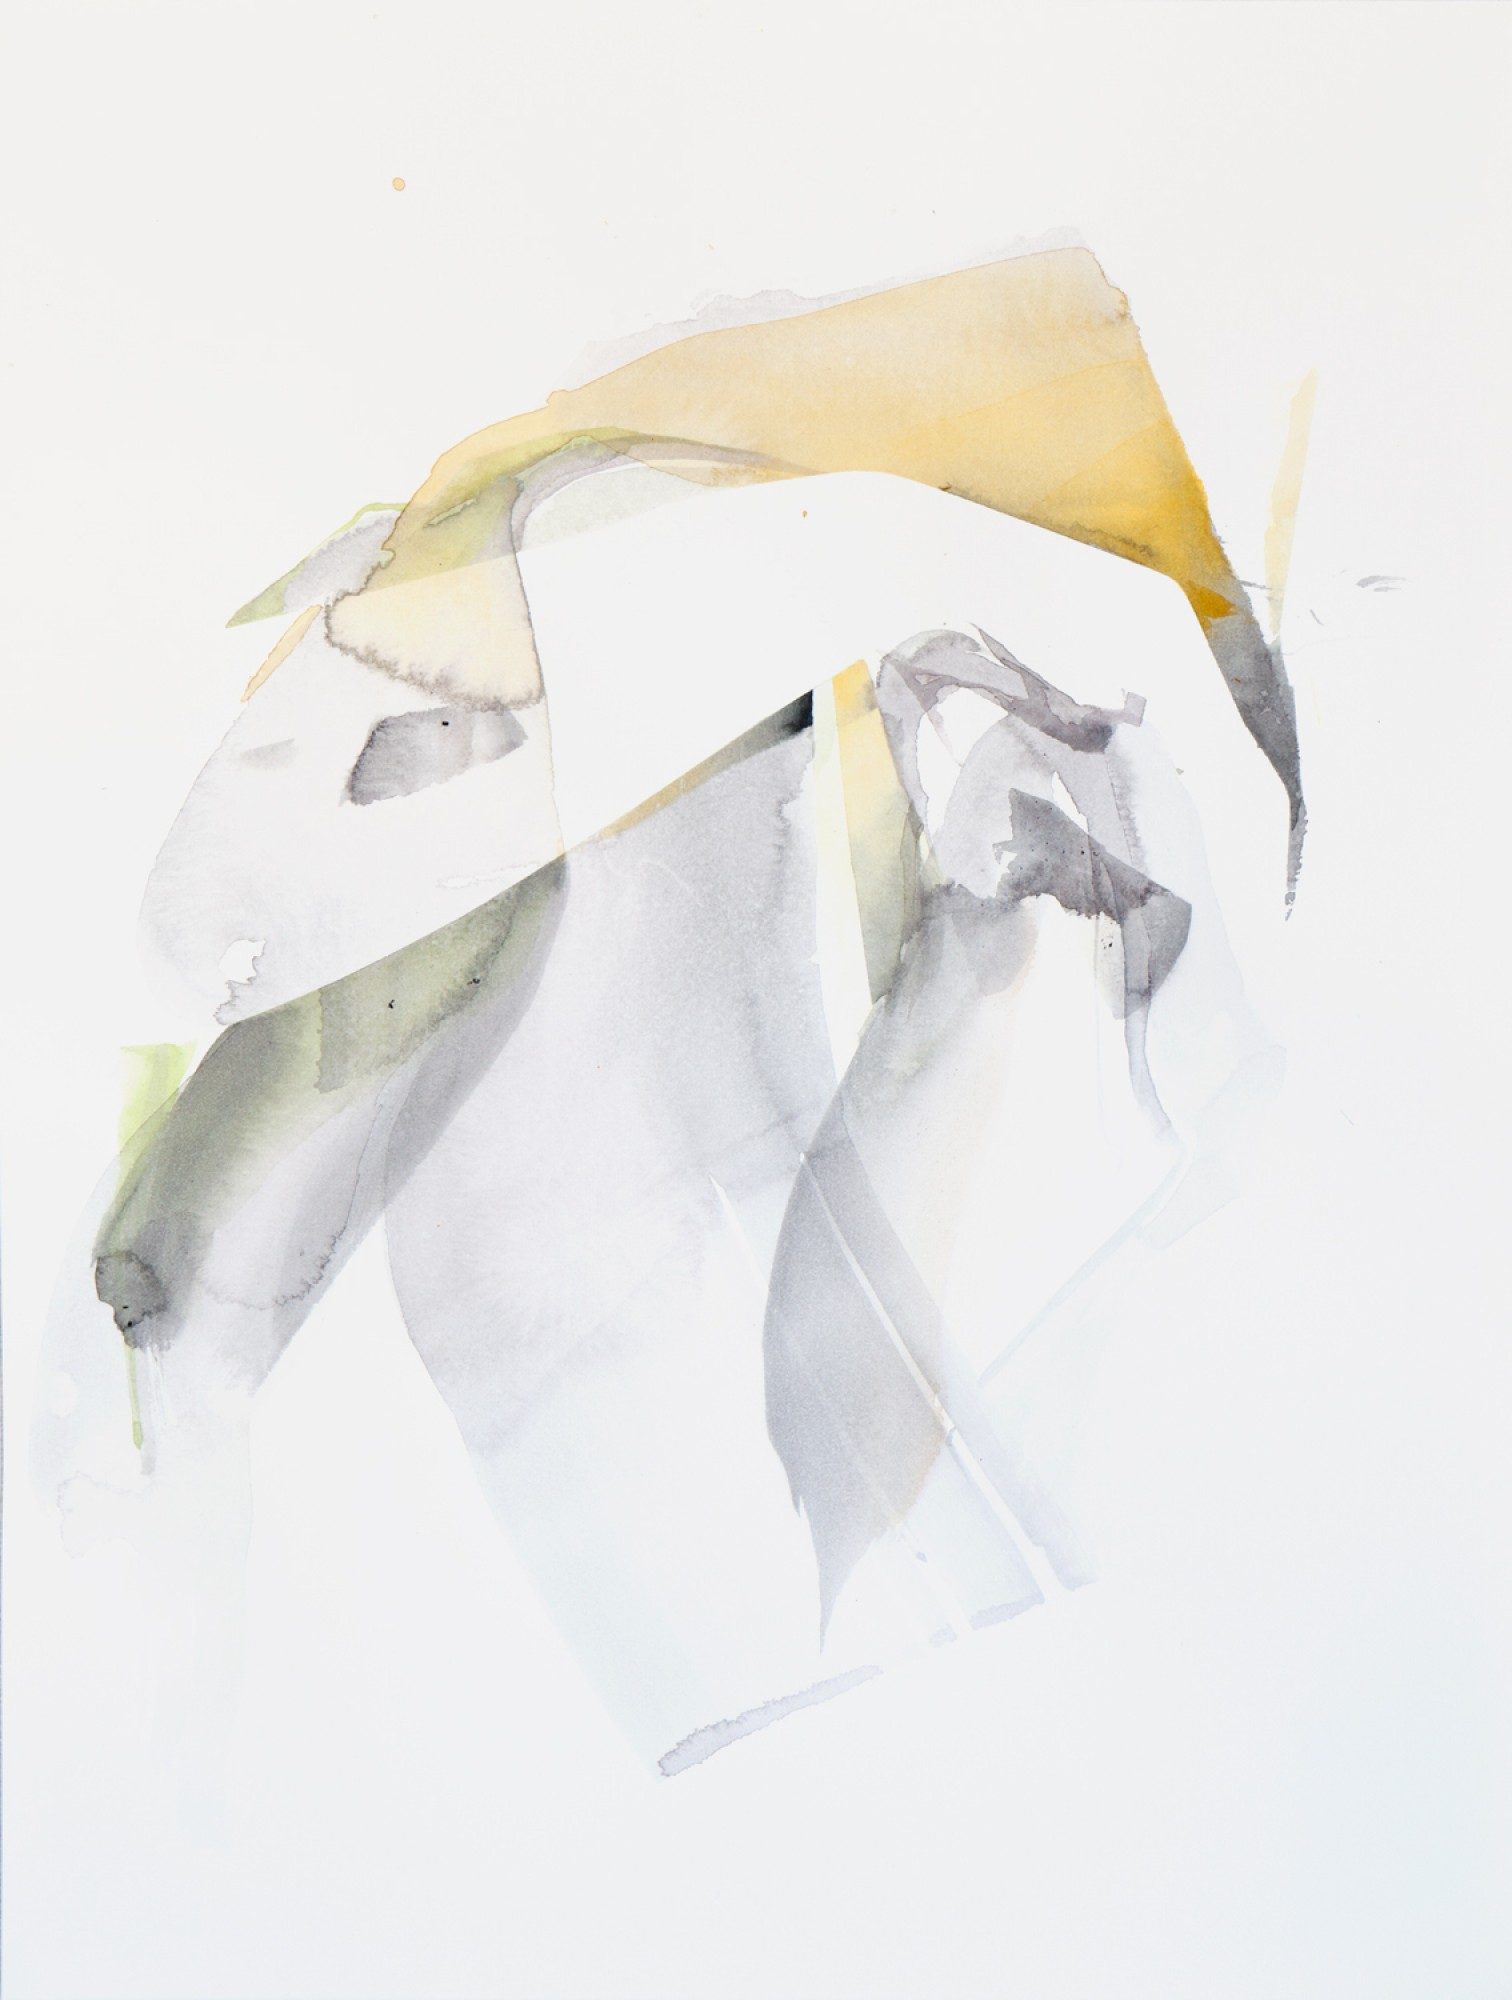 Natascha Schmitten - Untitled, 2018, watercolor on paper, 40 x 30 cm